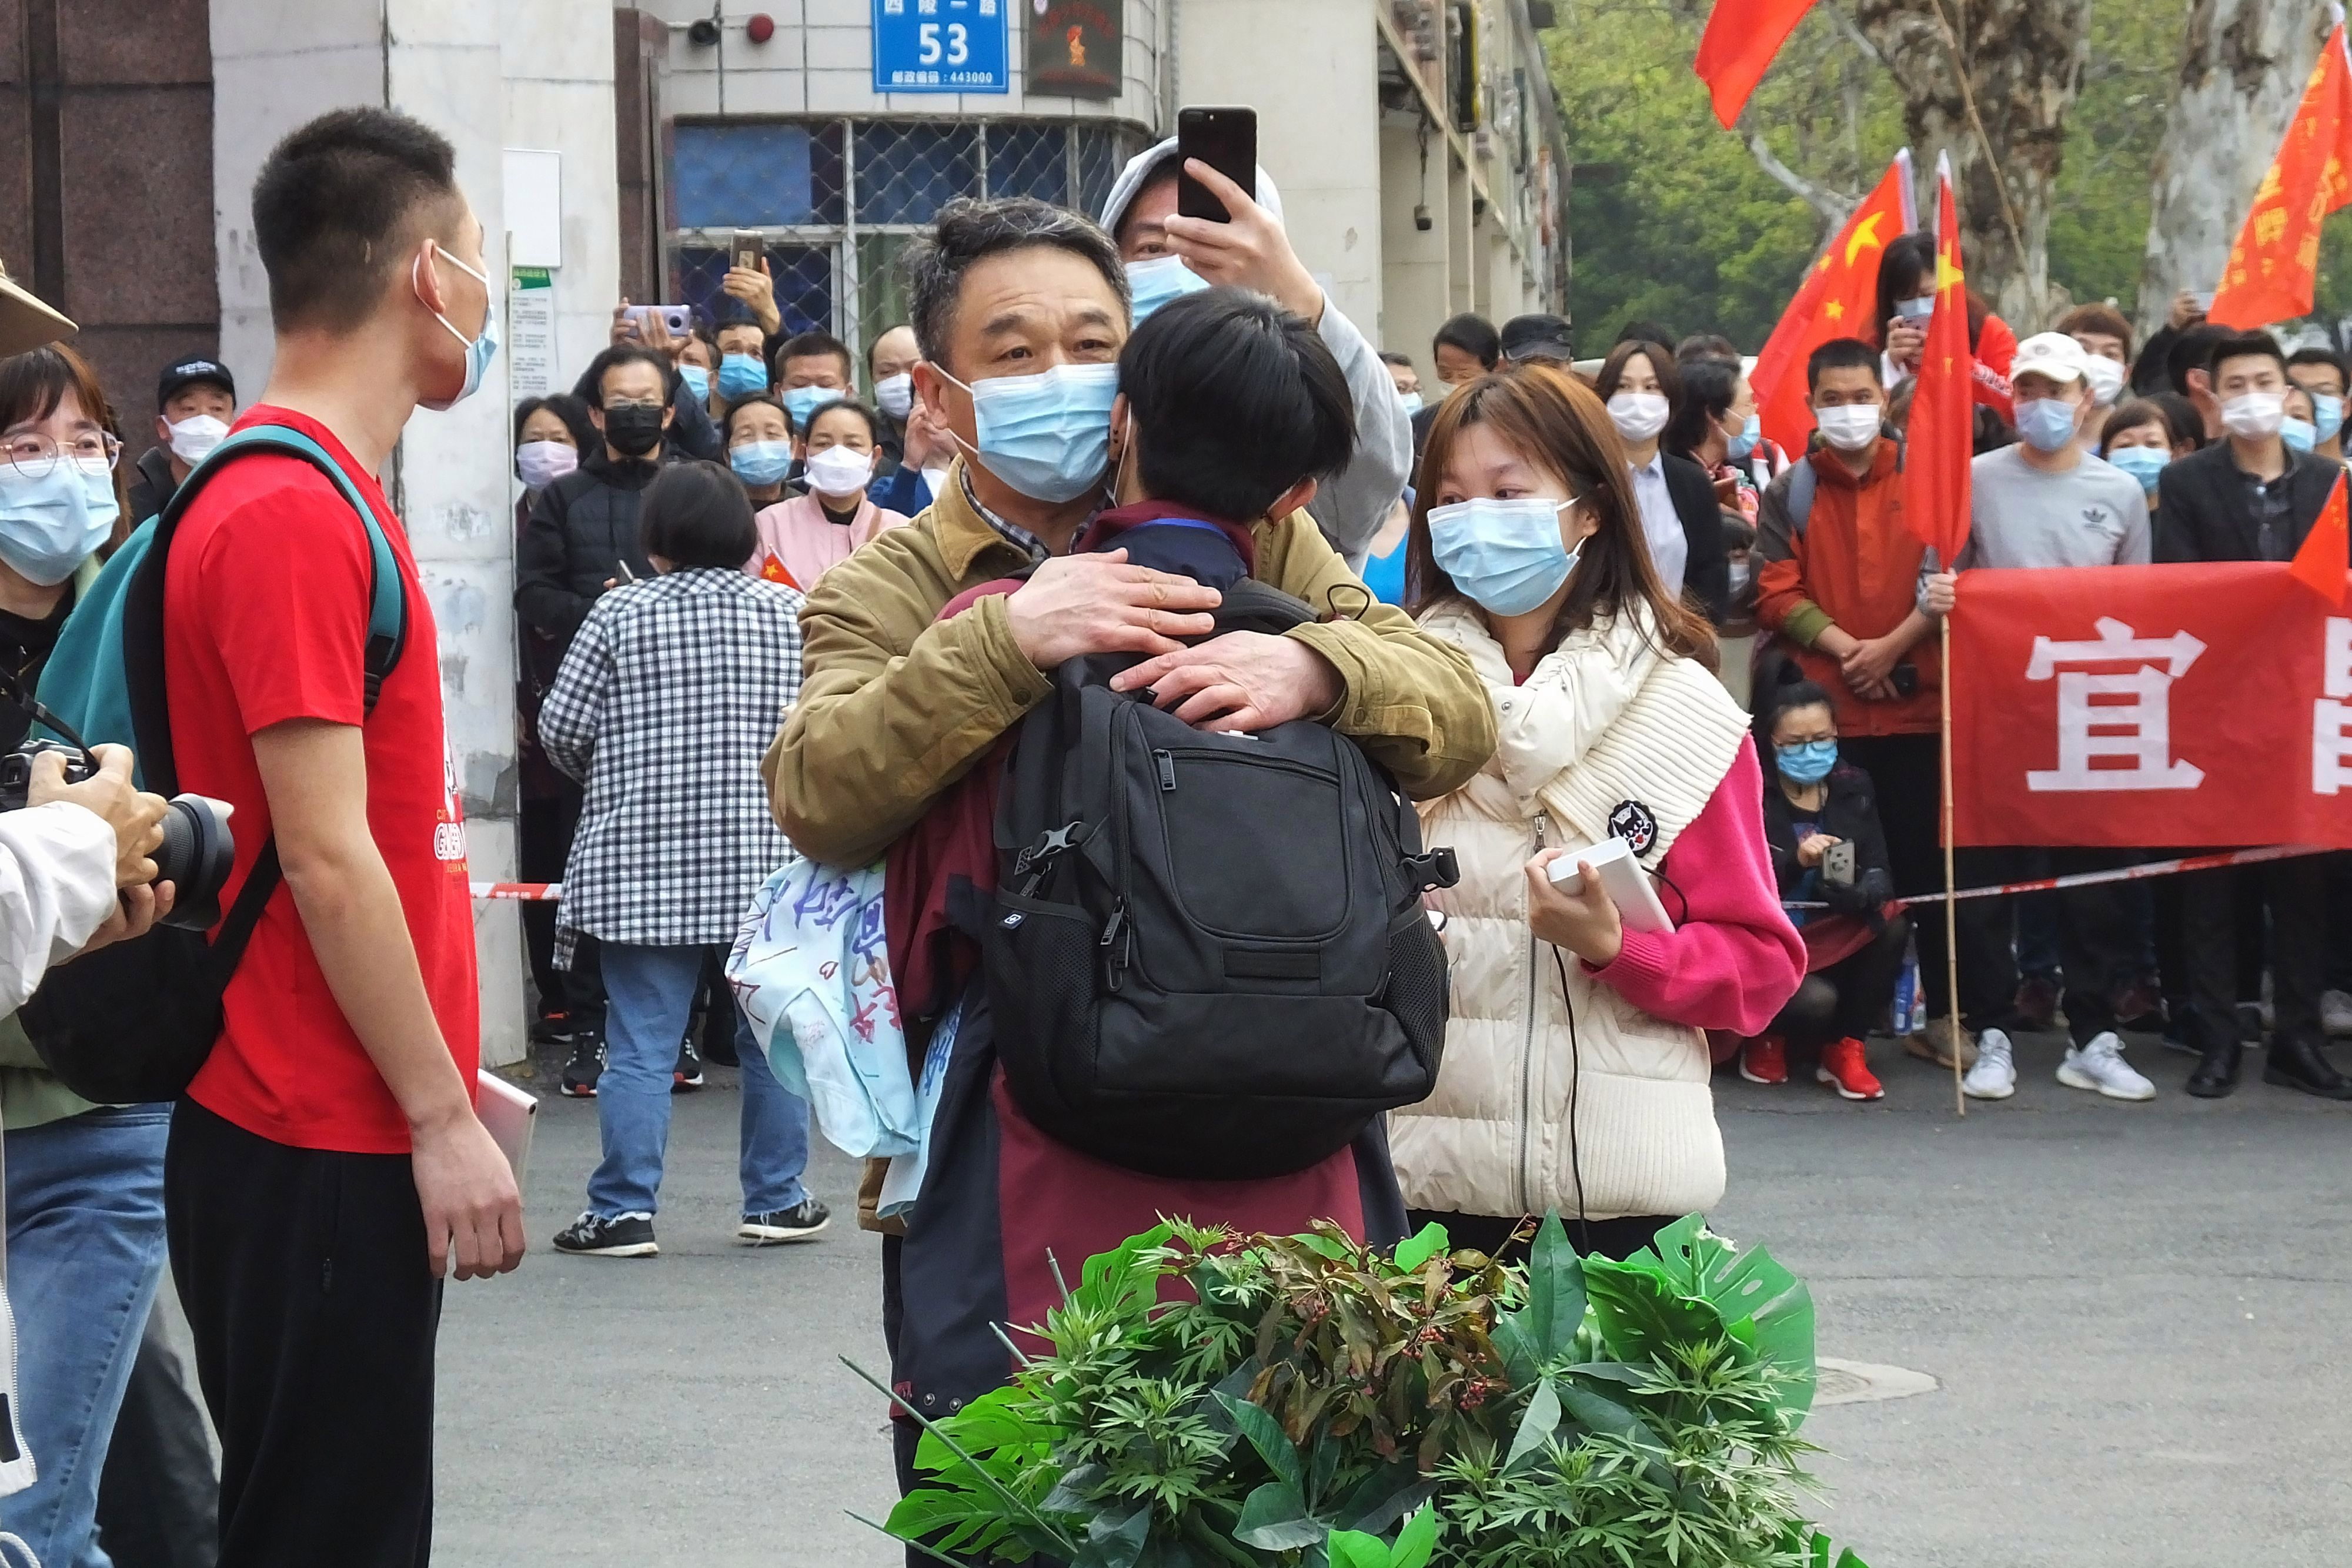 People in Hubei province have been under a strict lockdown for over two months, and healthy citizens will now be allowed to leave their homes